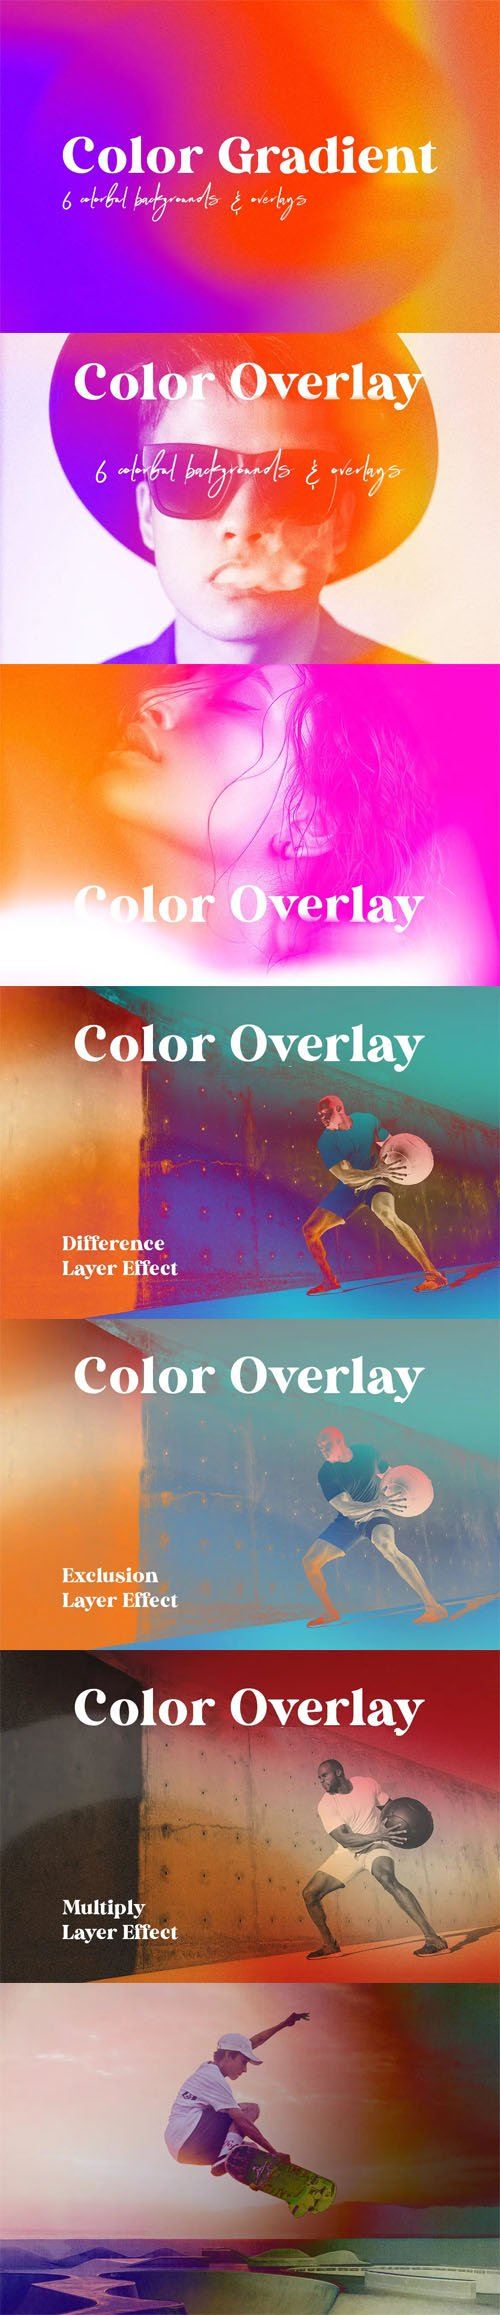 Color Gradient - 30 Colorful Backgrounds & Overlays